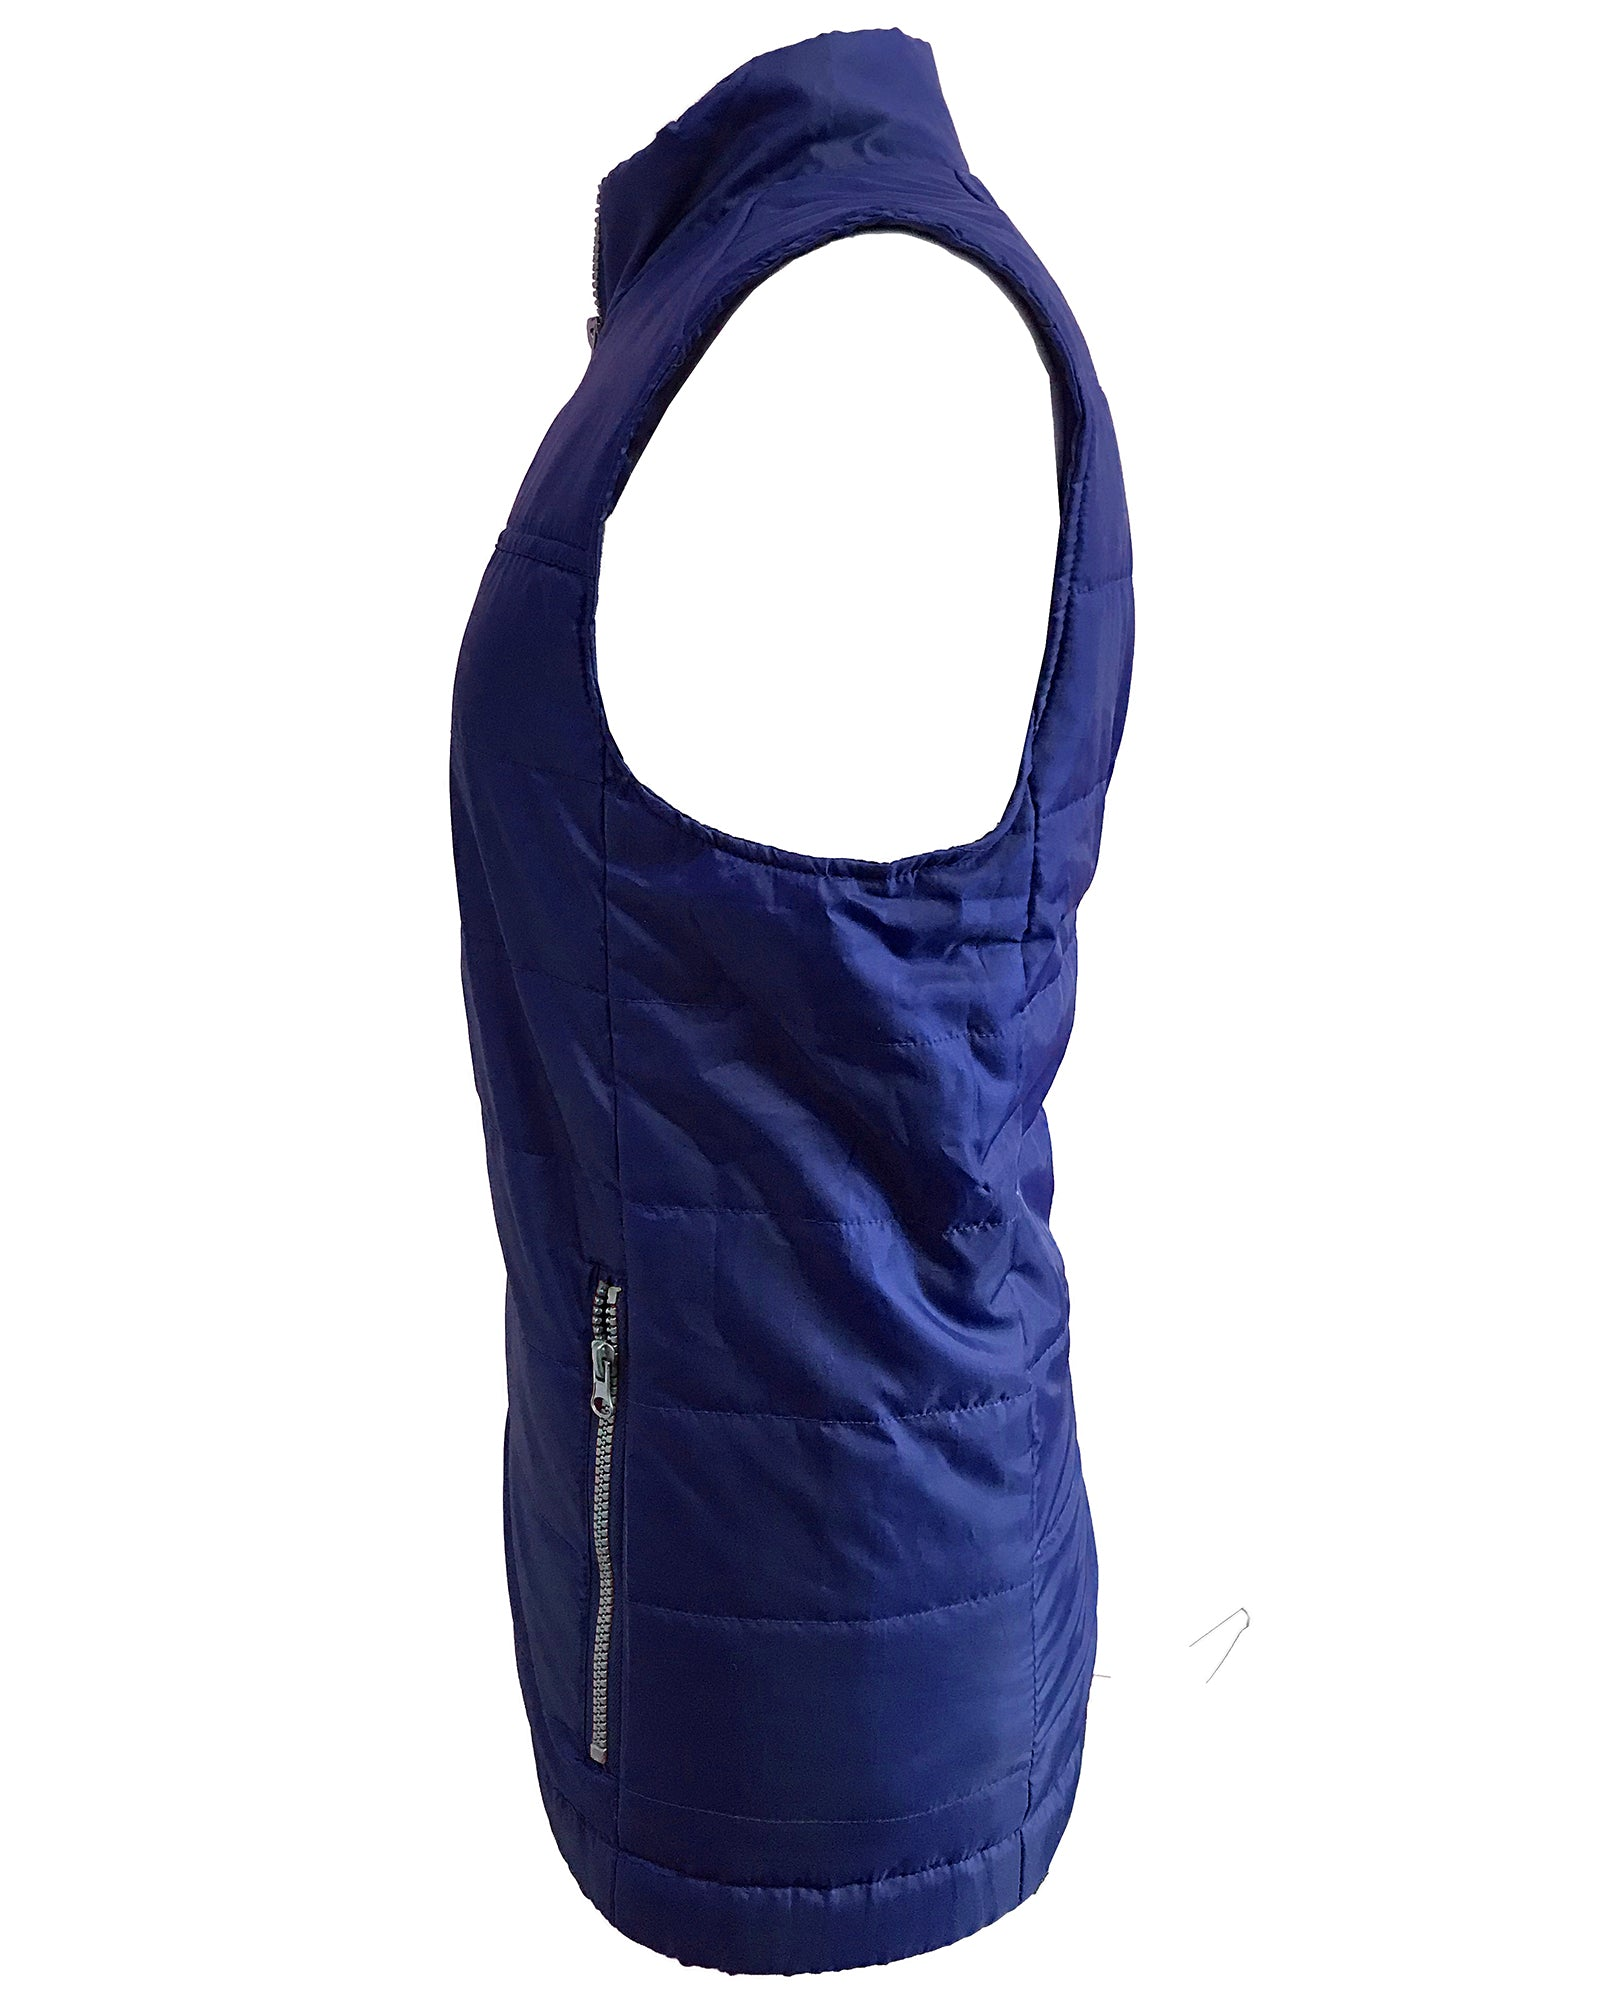 Mens Quilted Multi-Pocket Zipped Bodywarmer Gilet - Navy